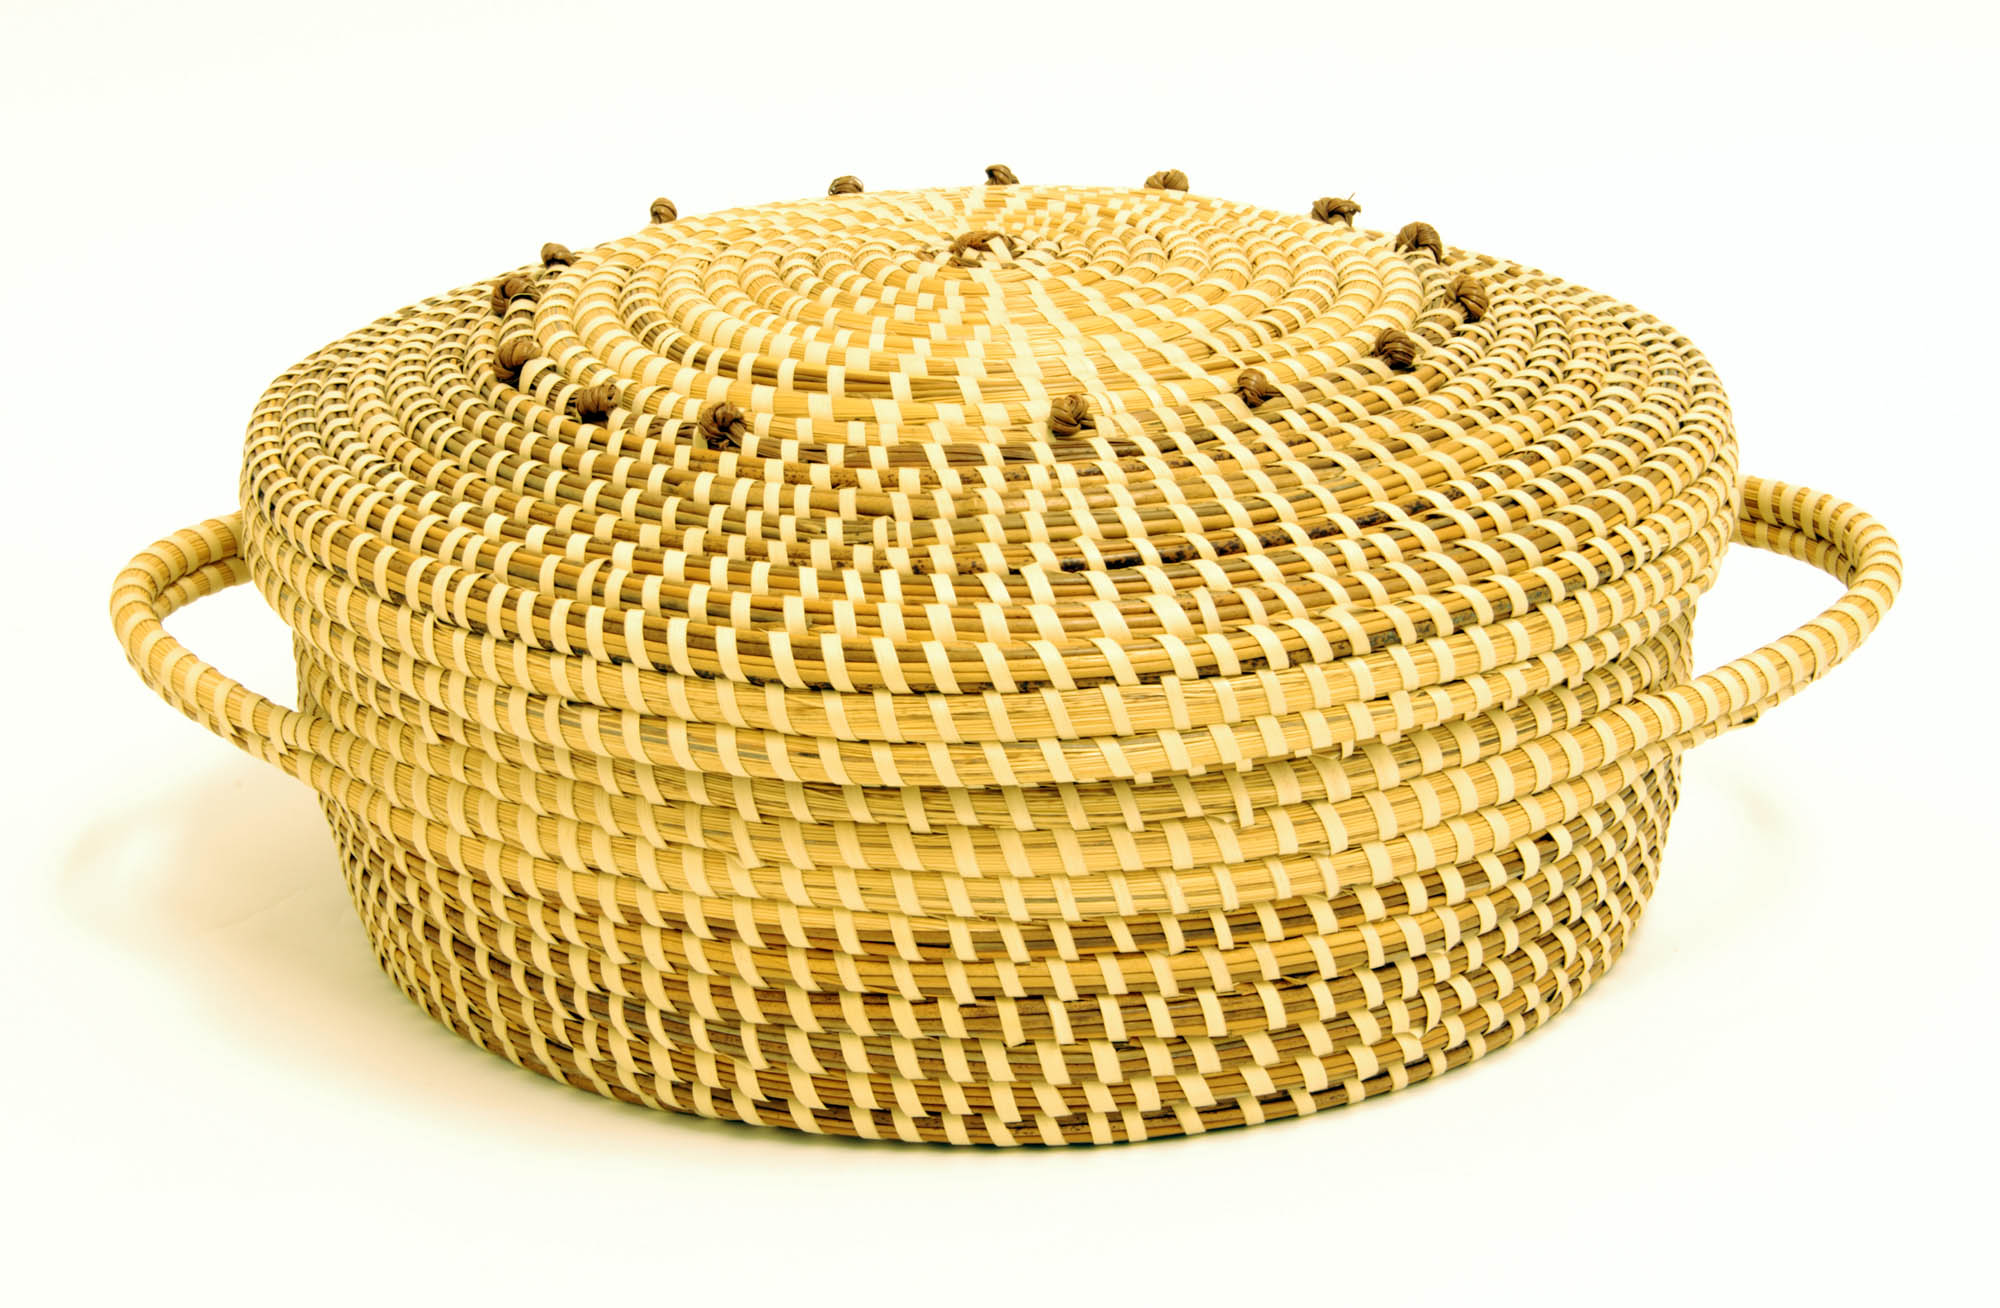 Sweetgrass sewing basket with hinged lid